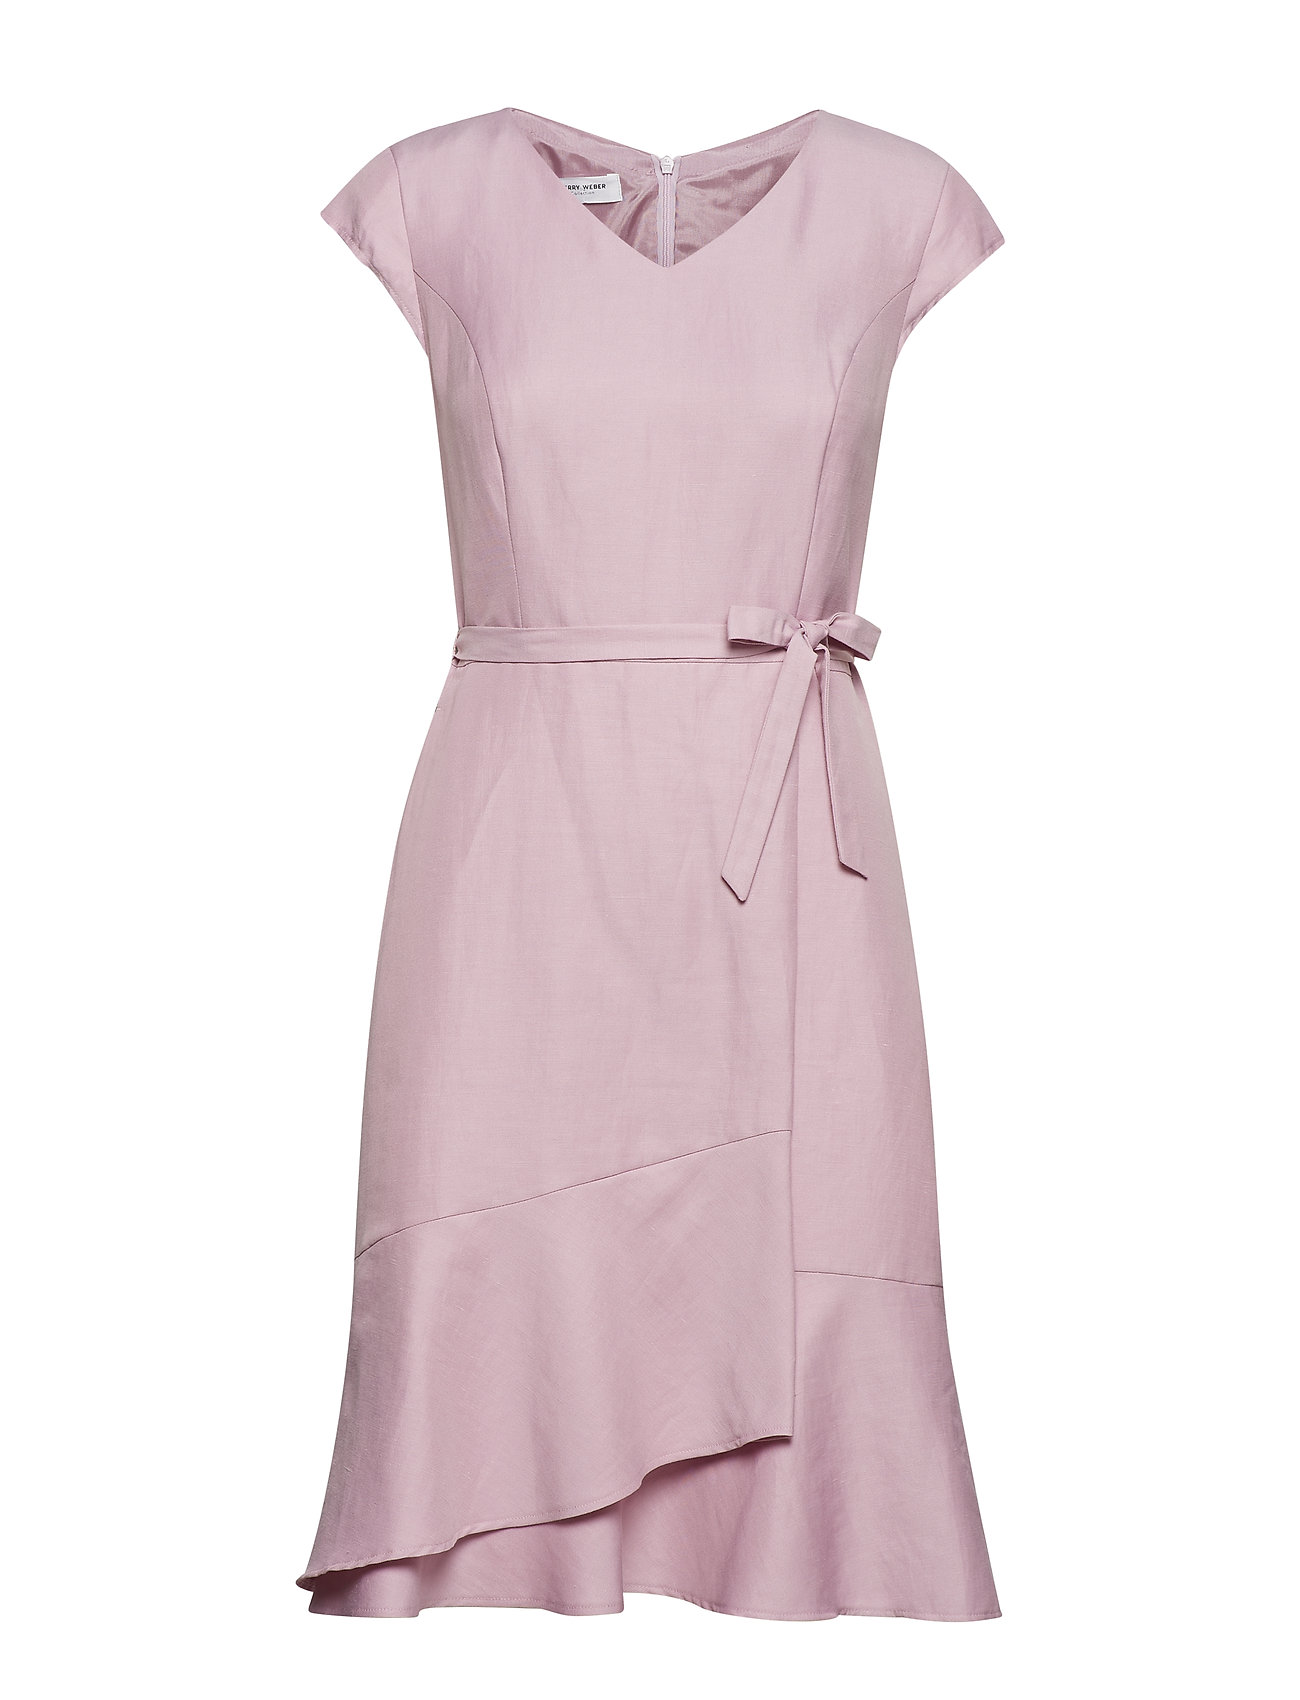 outlet store 72473 d7457 45% Sale Dress Woven Fabric Kurzes Kleid Pink GERRY WEBER ...